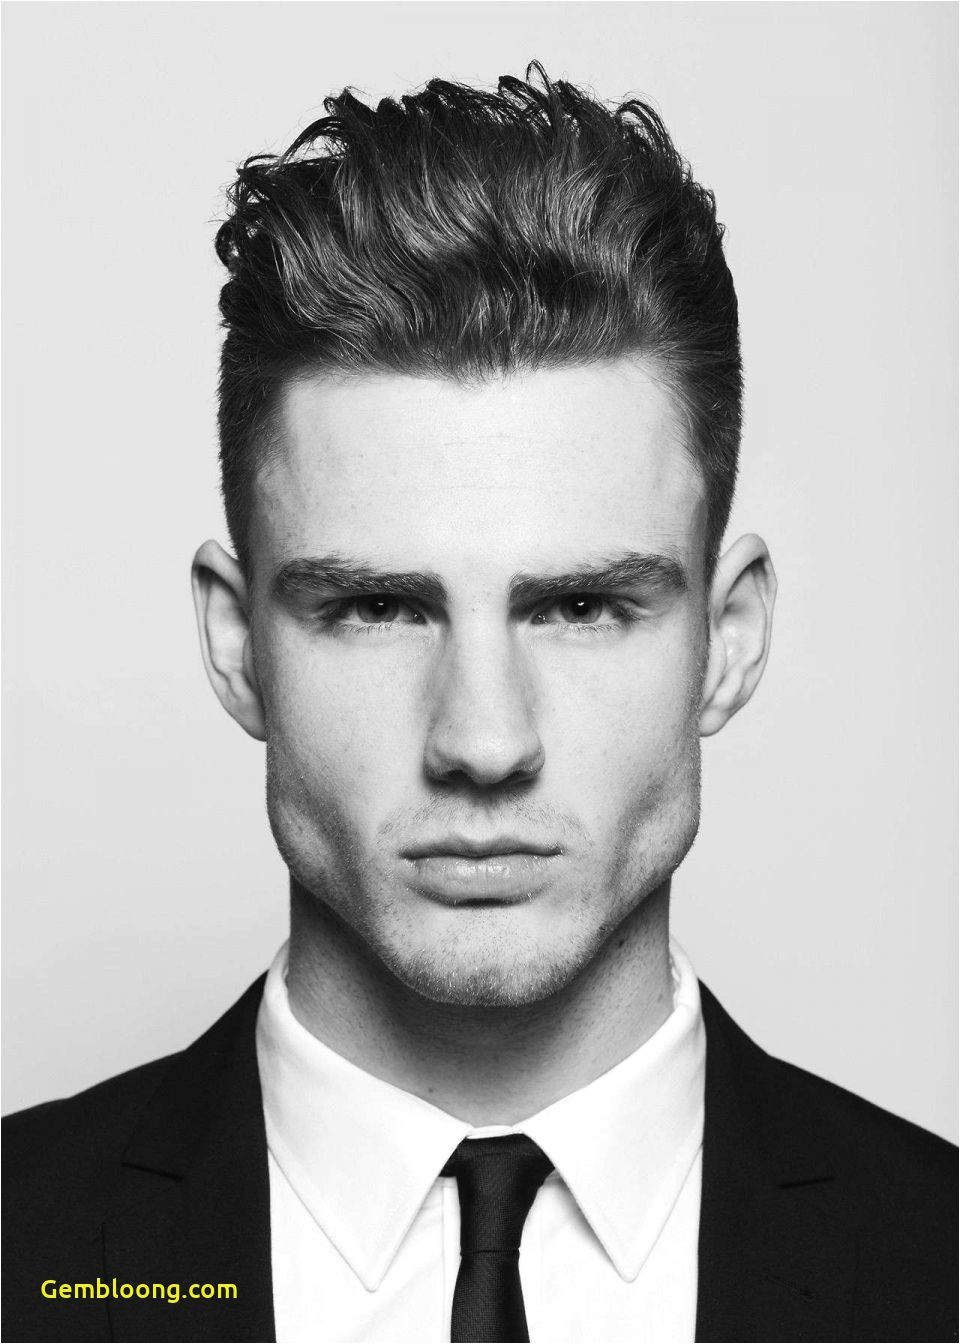 Hairstyles for A Round Face New Hairstyles for Round Faces Small foreheads Fresh Hairstyles Men 0d